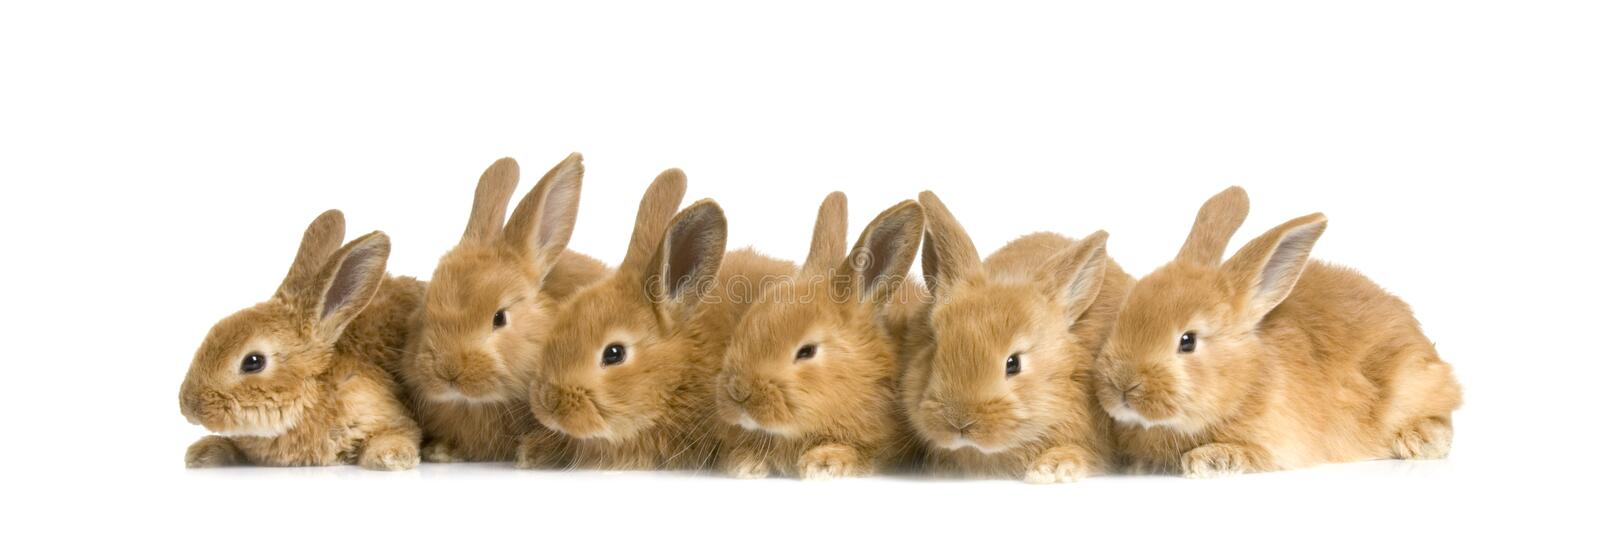 Groupe de lapins photo stock